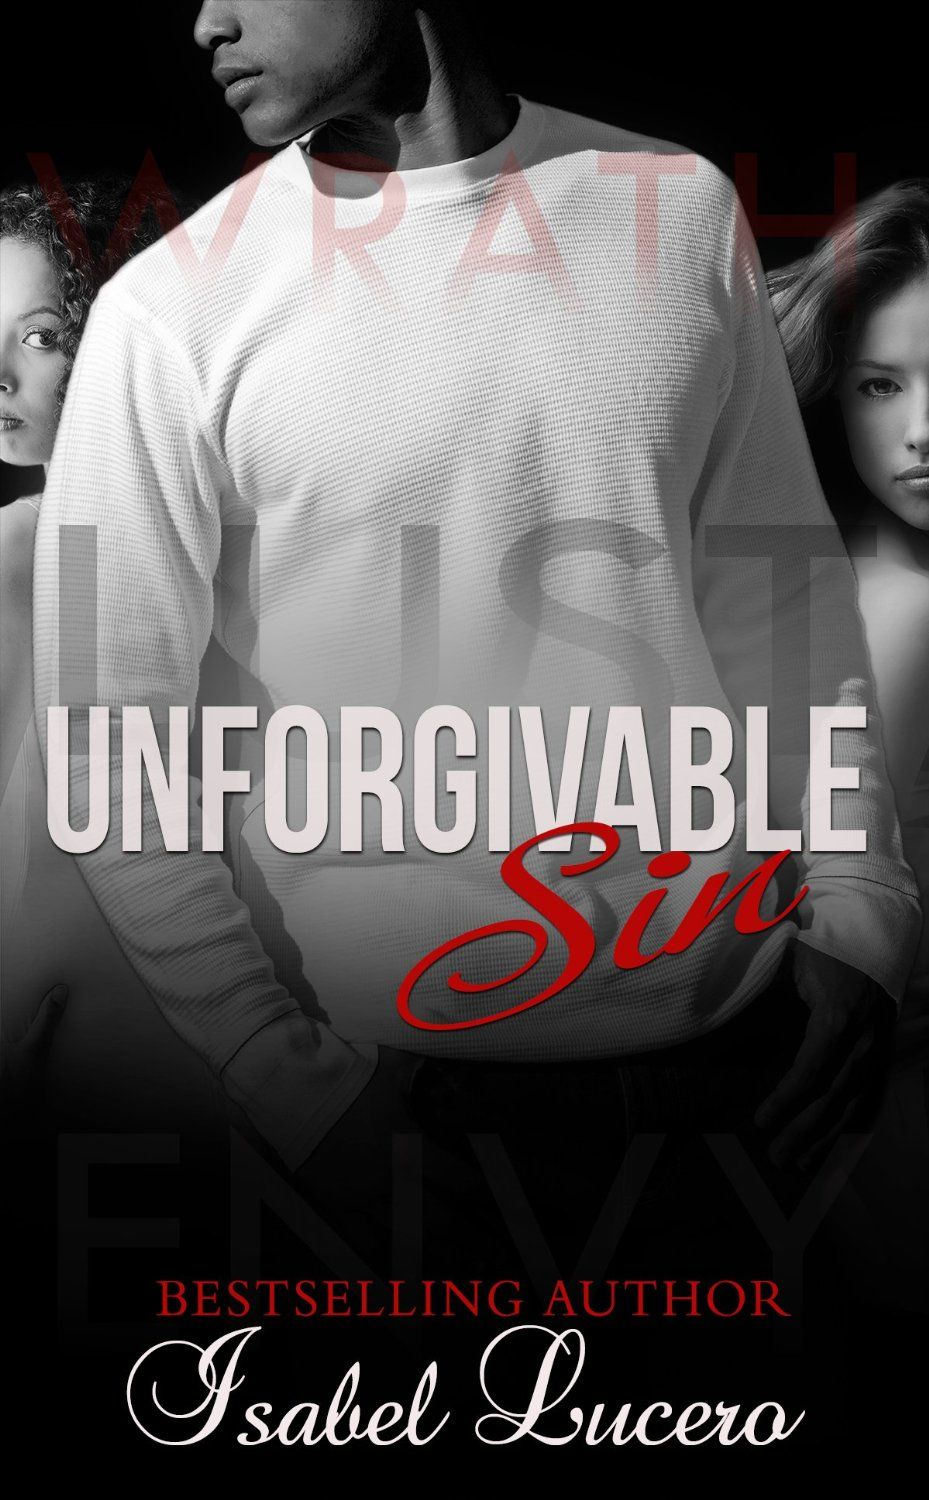 Unforgivable Sin (The Escort Series) ~ More For Less Online $0.99 Kindle Books on the Move! http://www.moreforlessonline.com/books.html Check out all of today's deals & freebies by signing up. http://madmimi.com/p/c514e4  #kindle #books #ebooks   #book